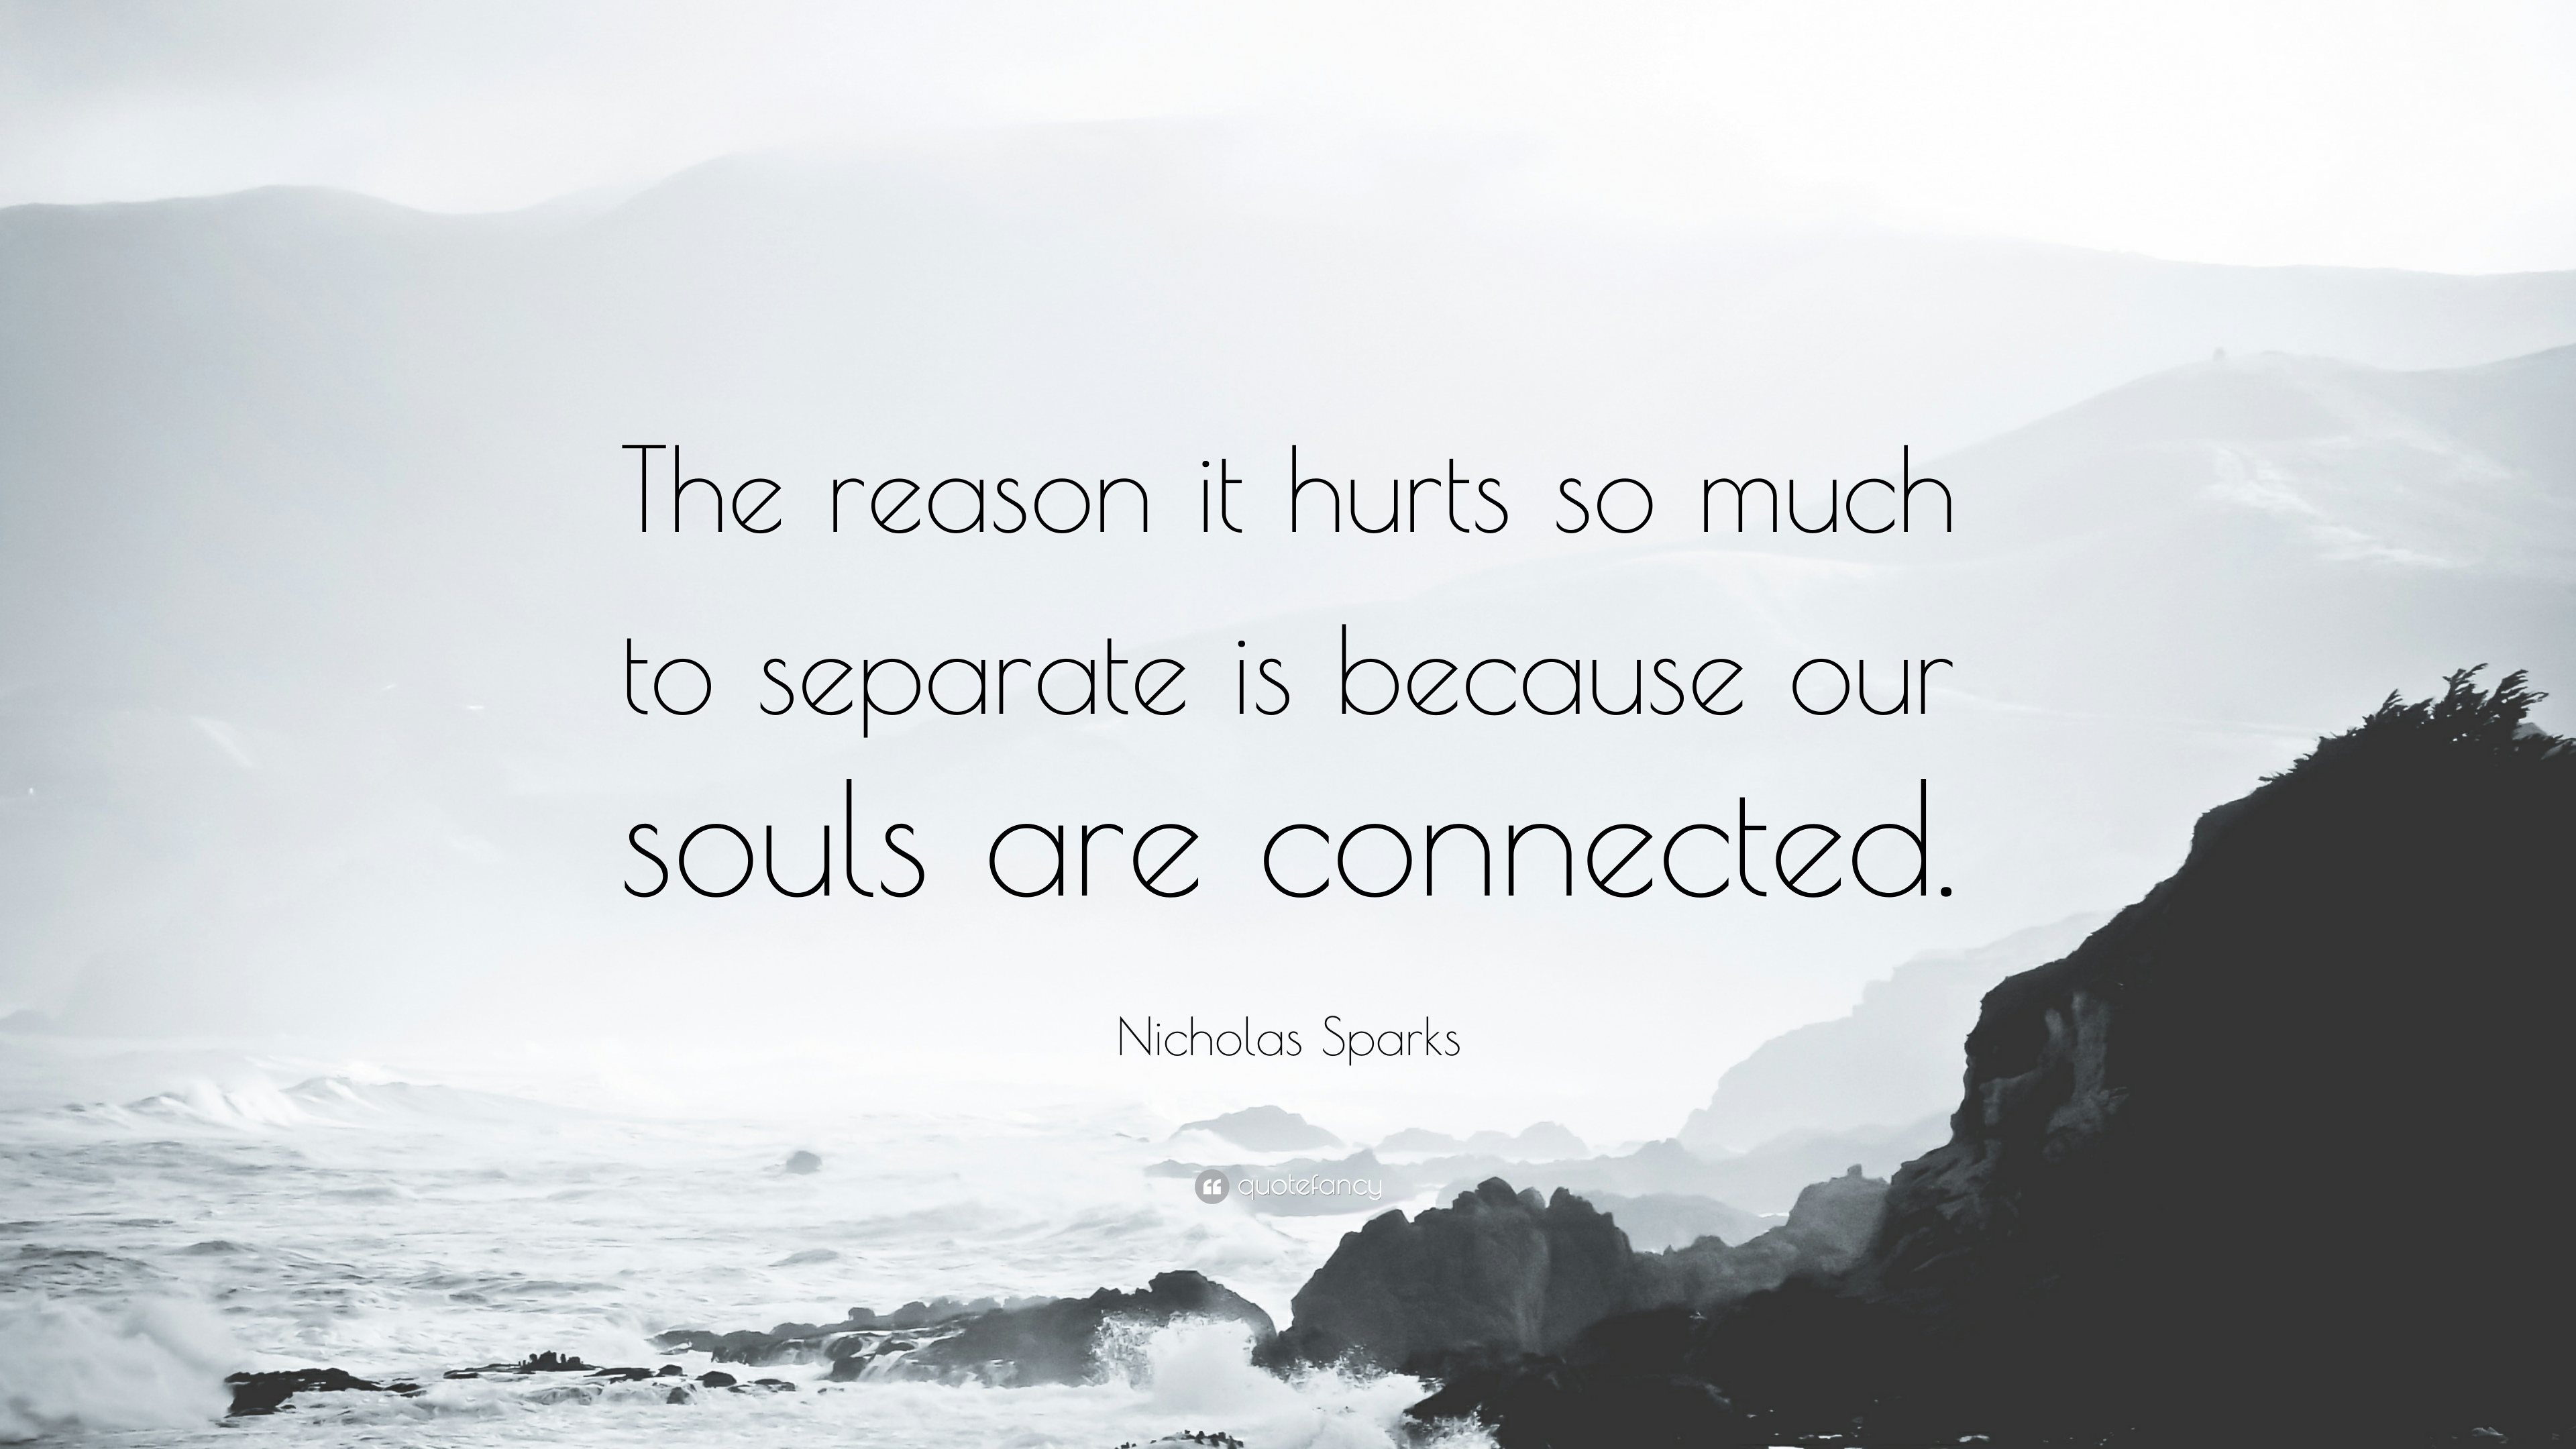 Nicholas Sparks Quote The Reason It Hurts So Much To Separate Is